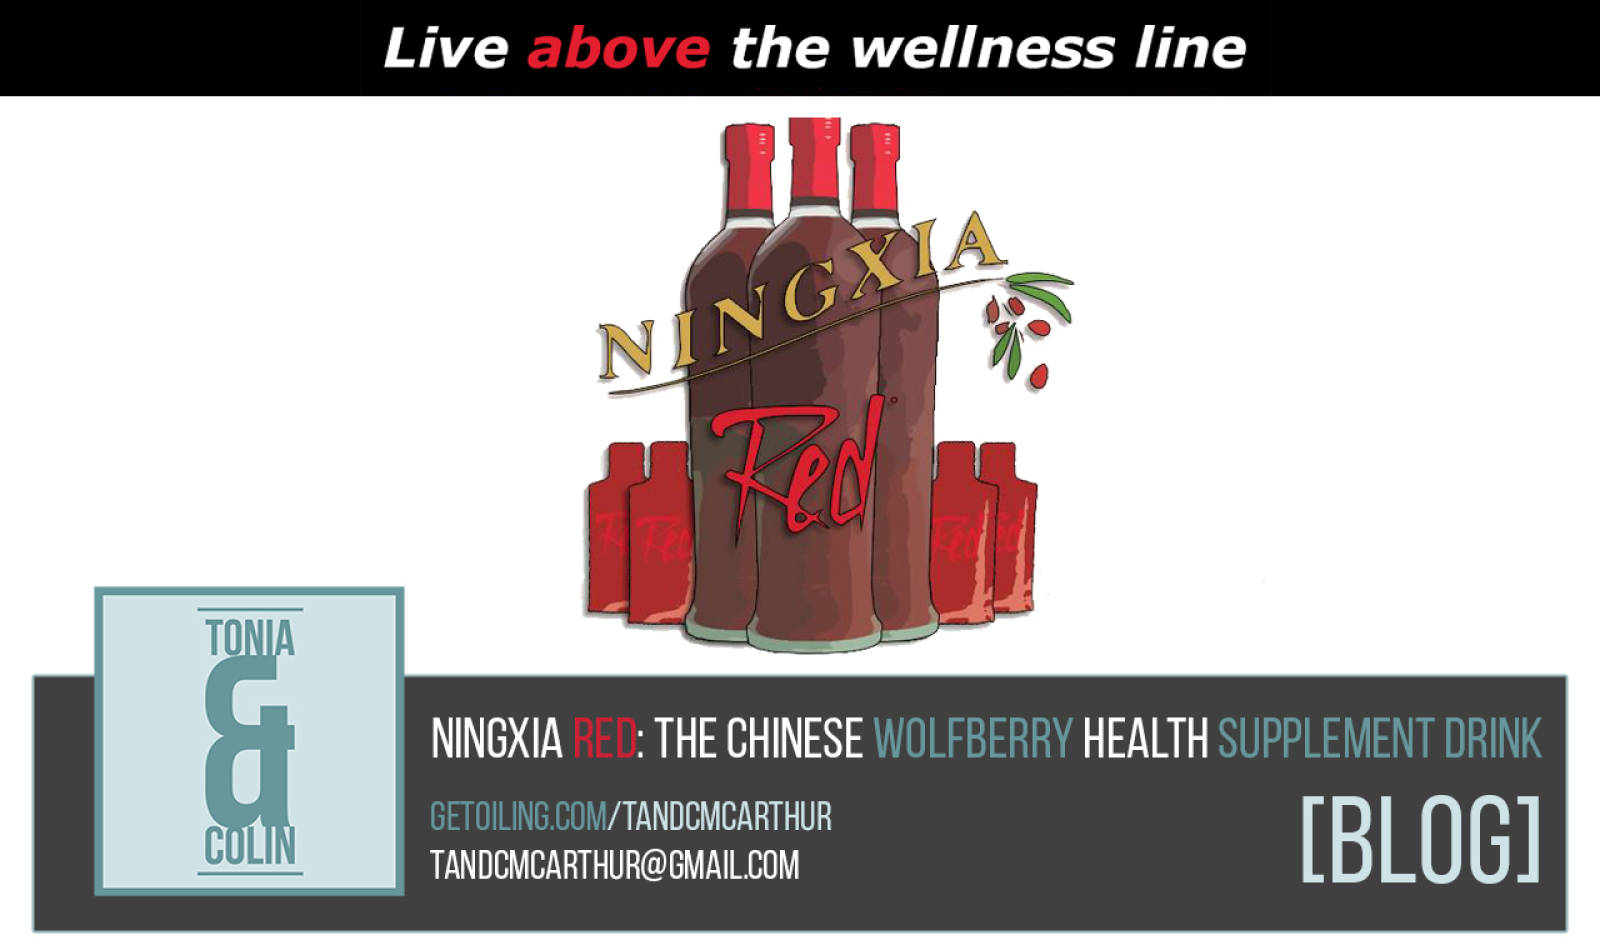 NingXia Red: The Chinese Wolfberry Health Supplement Drink